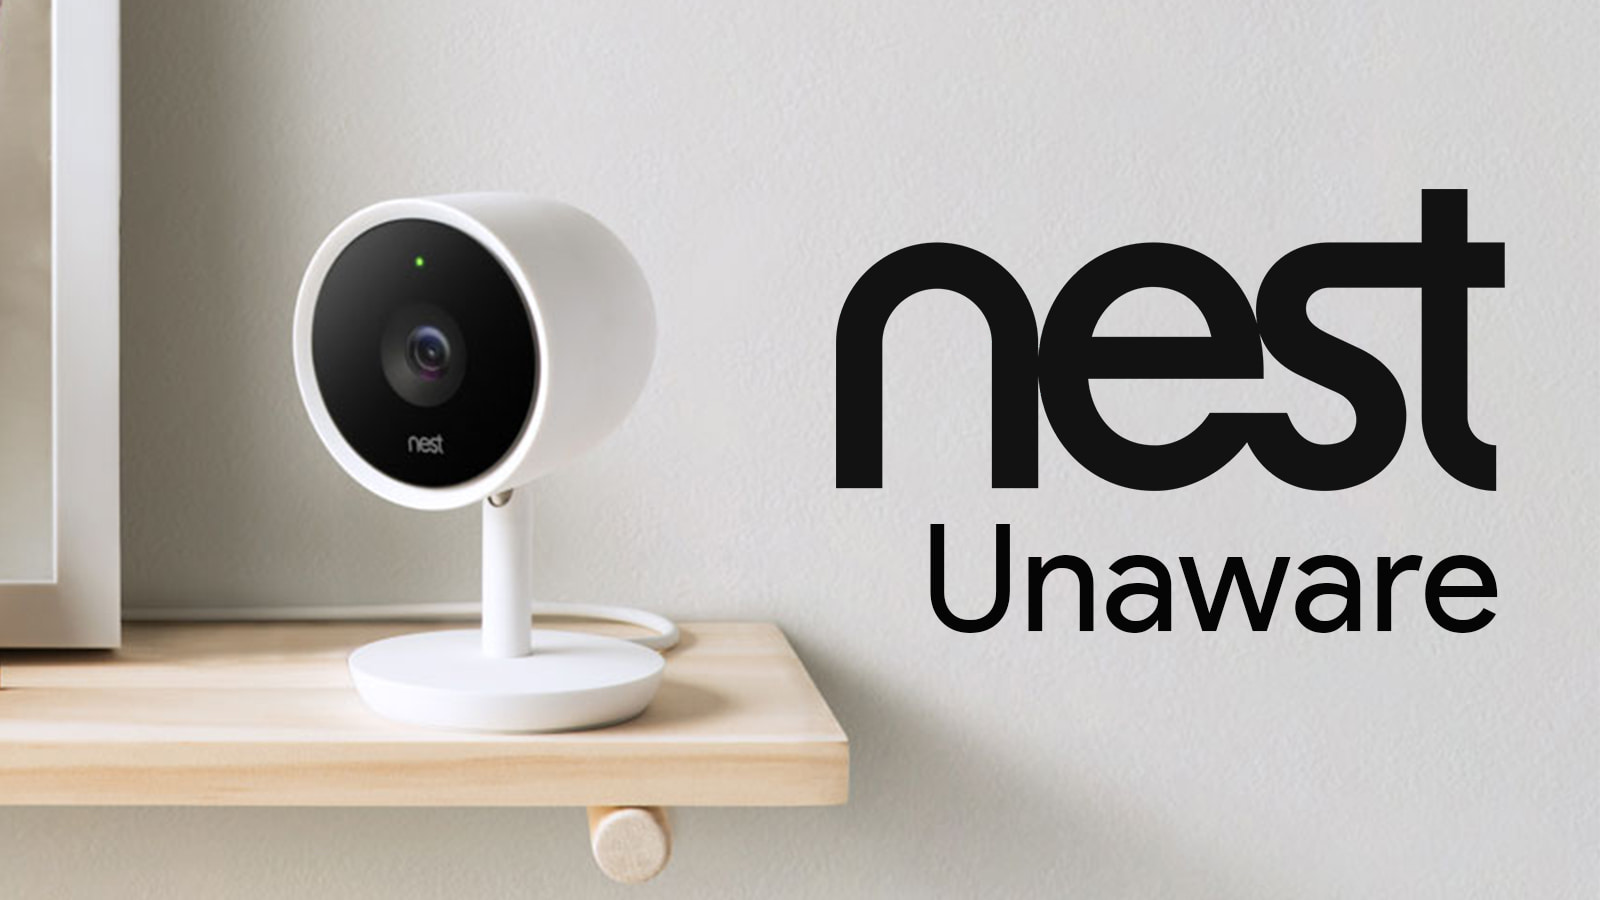 Frequent Nest service outages have me rethinking my choice of home security, but there may be hope